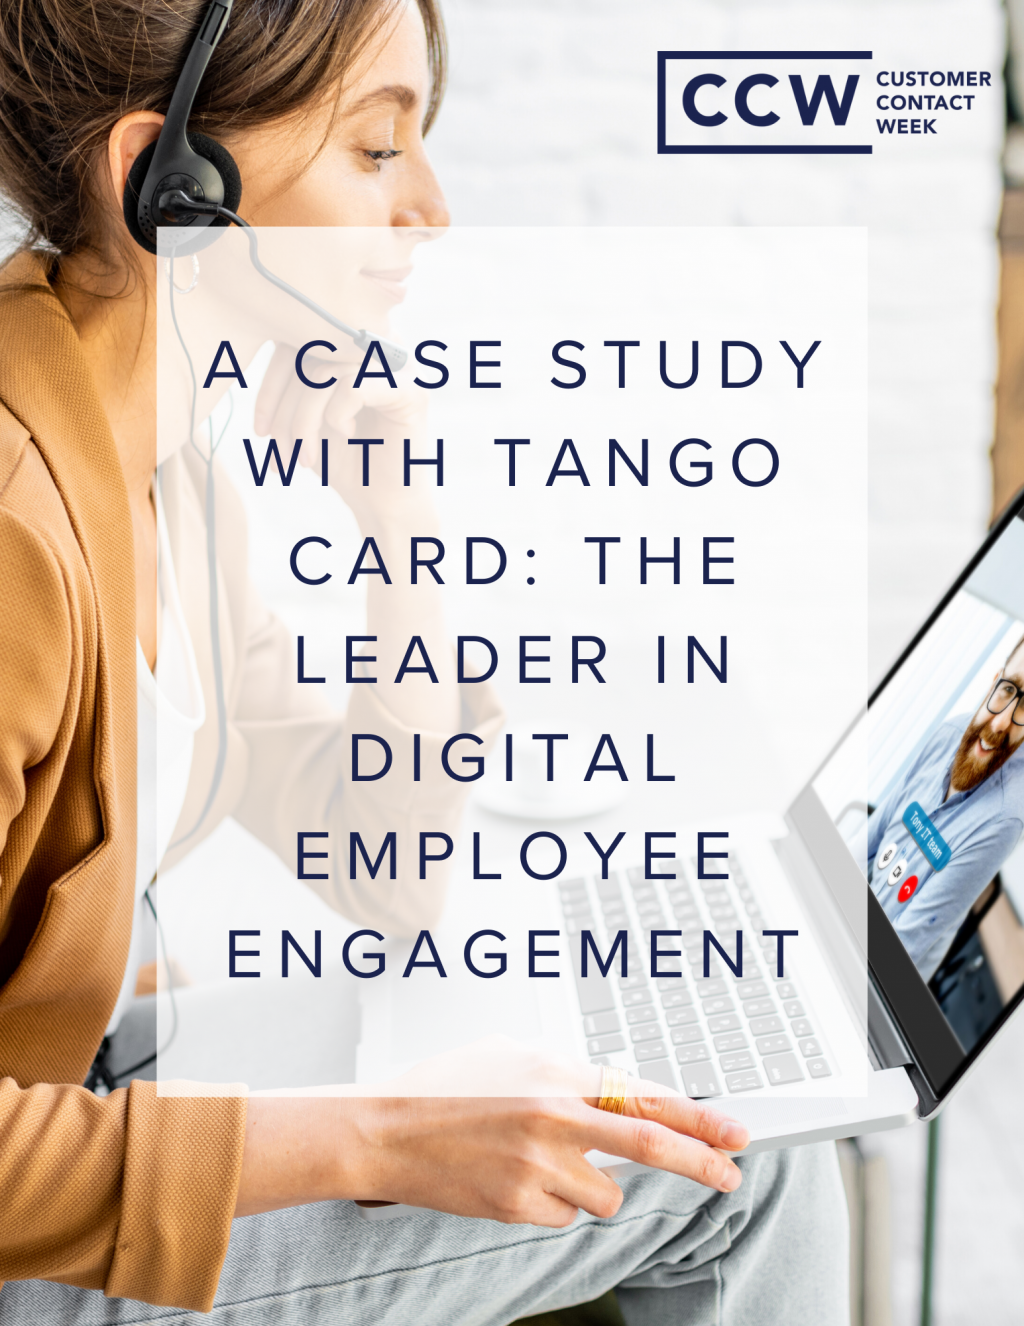 A Case Study With Tango Card: The Leader In Digital Employee Engagement